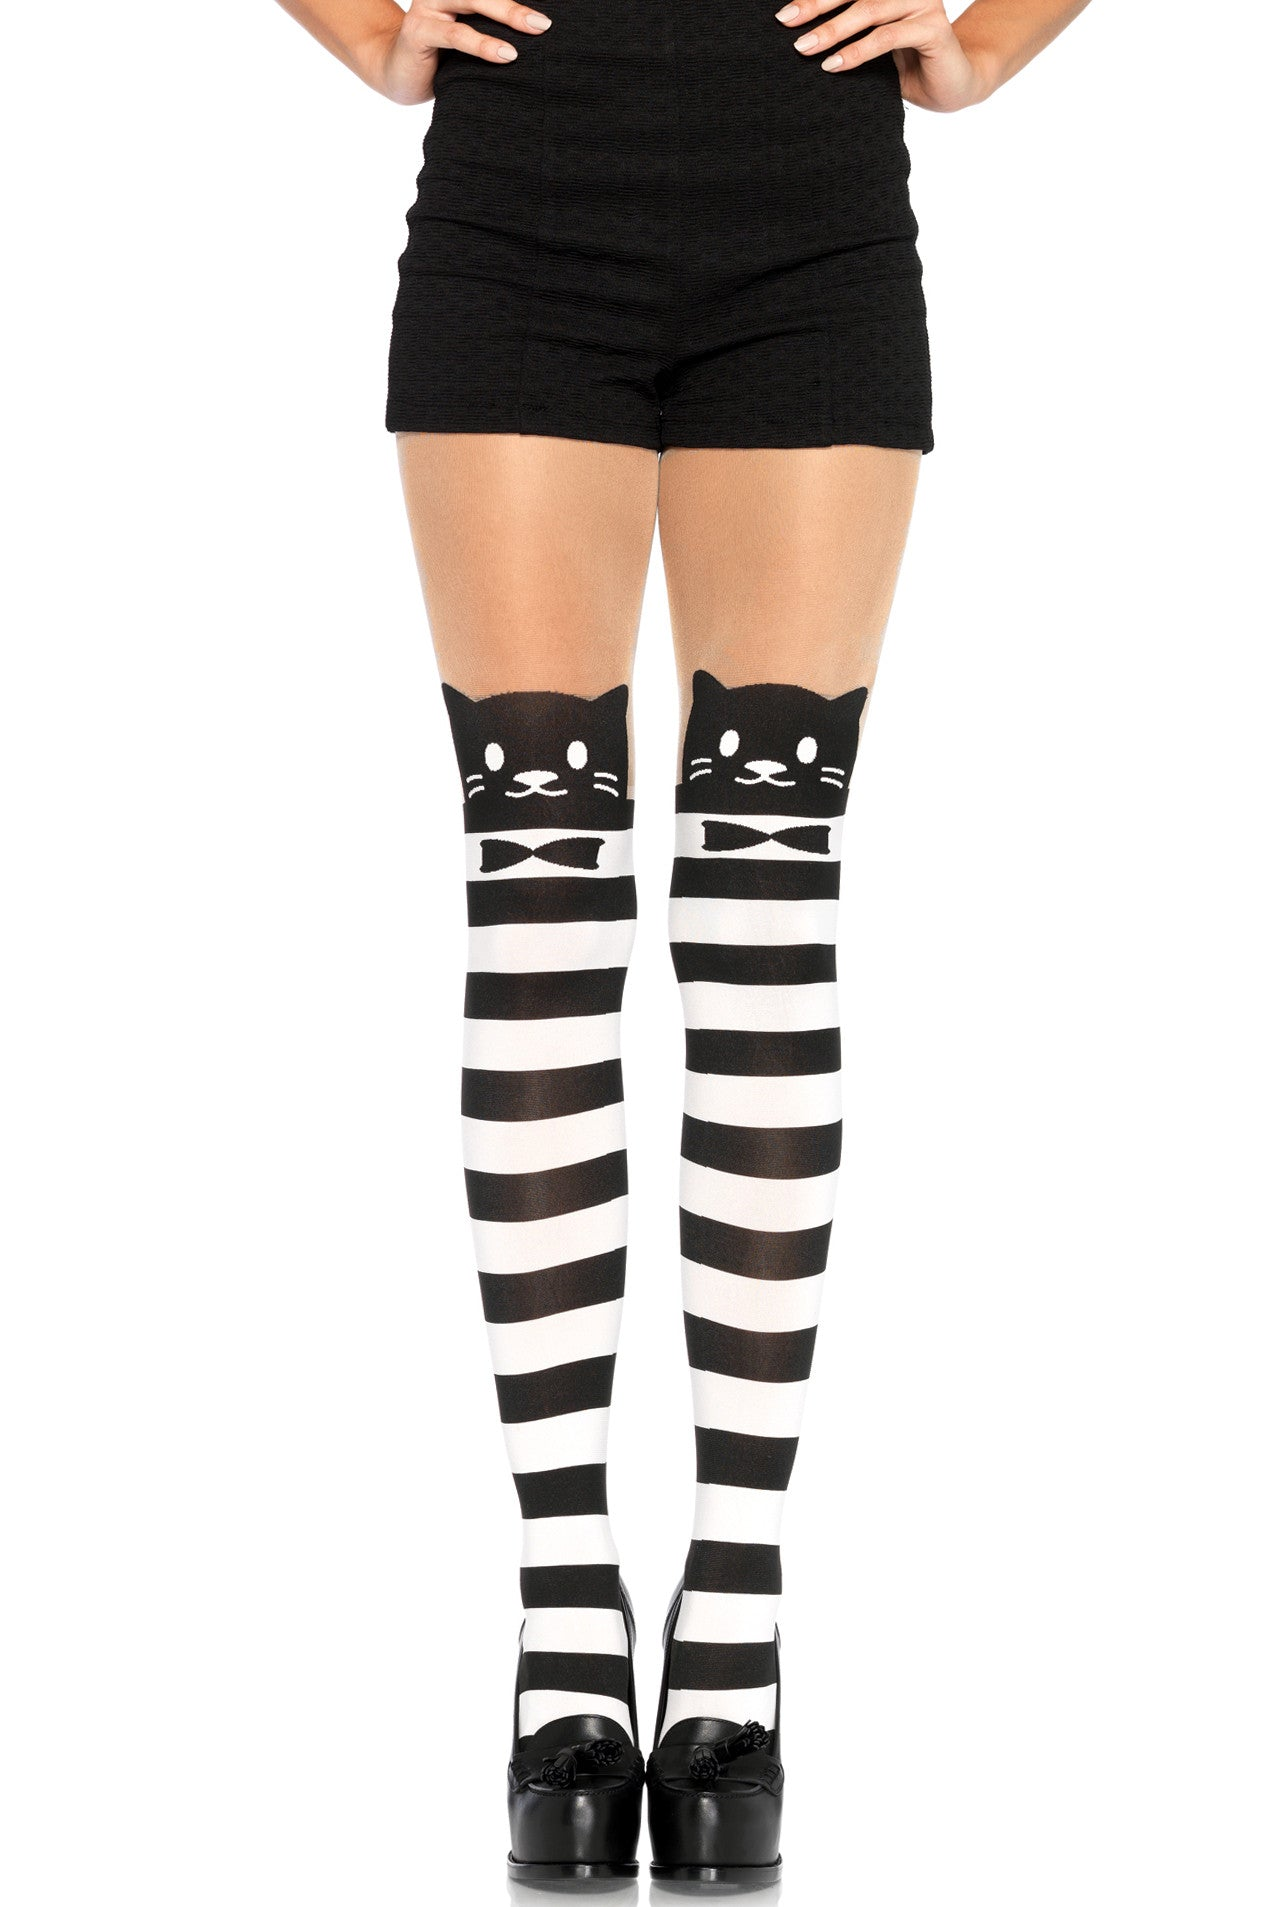 Fancy Striped Cat Tights